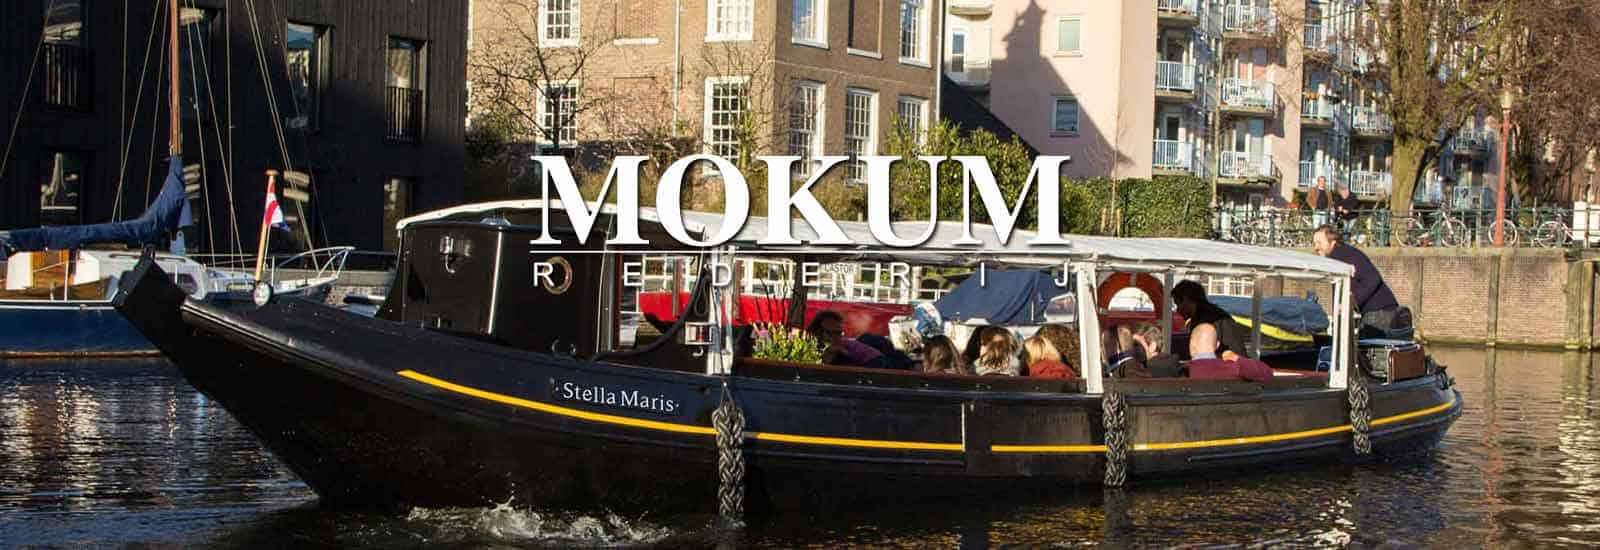 Boats for rental in Amsterdam - Rederij Mokum